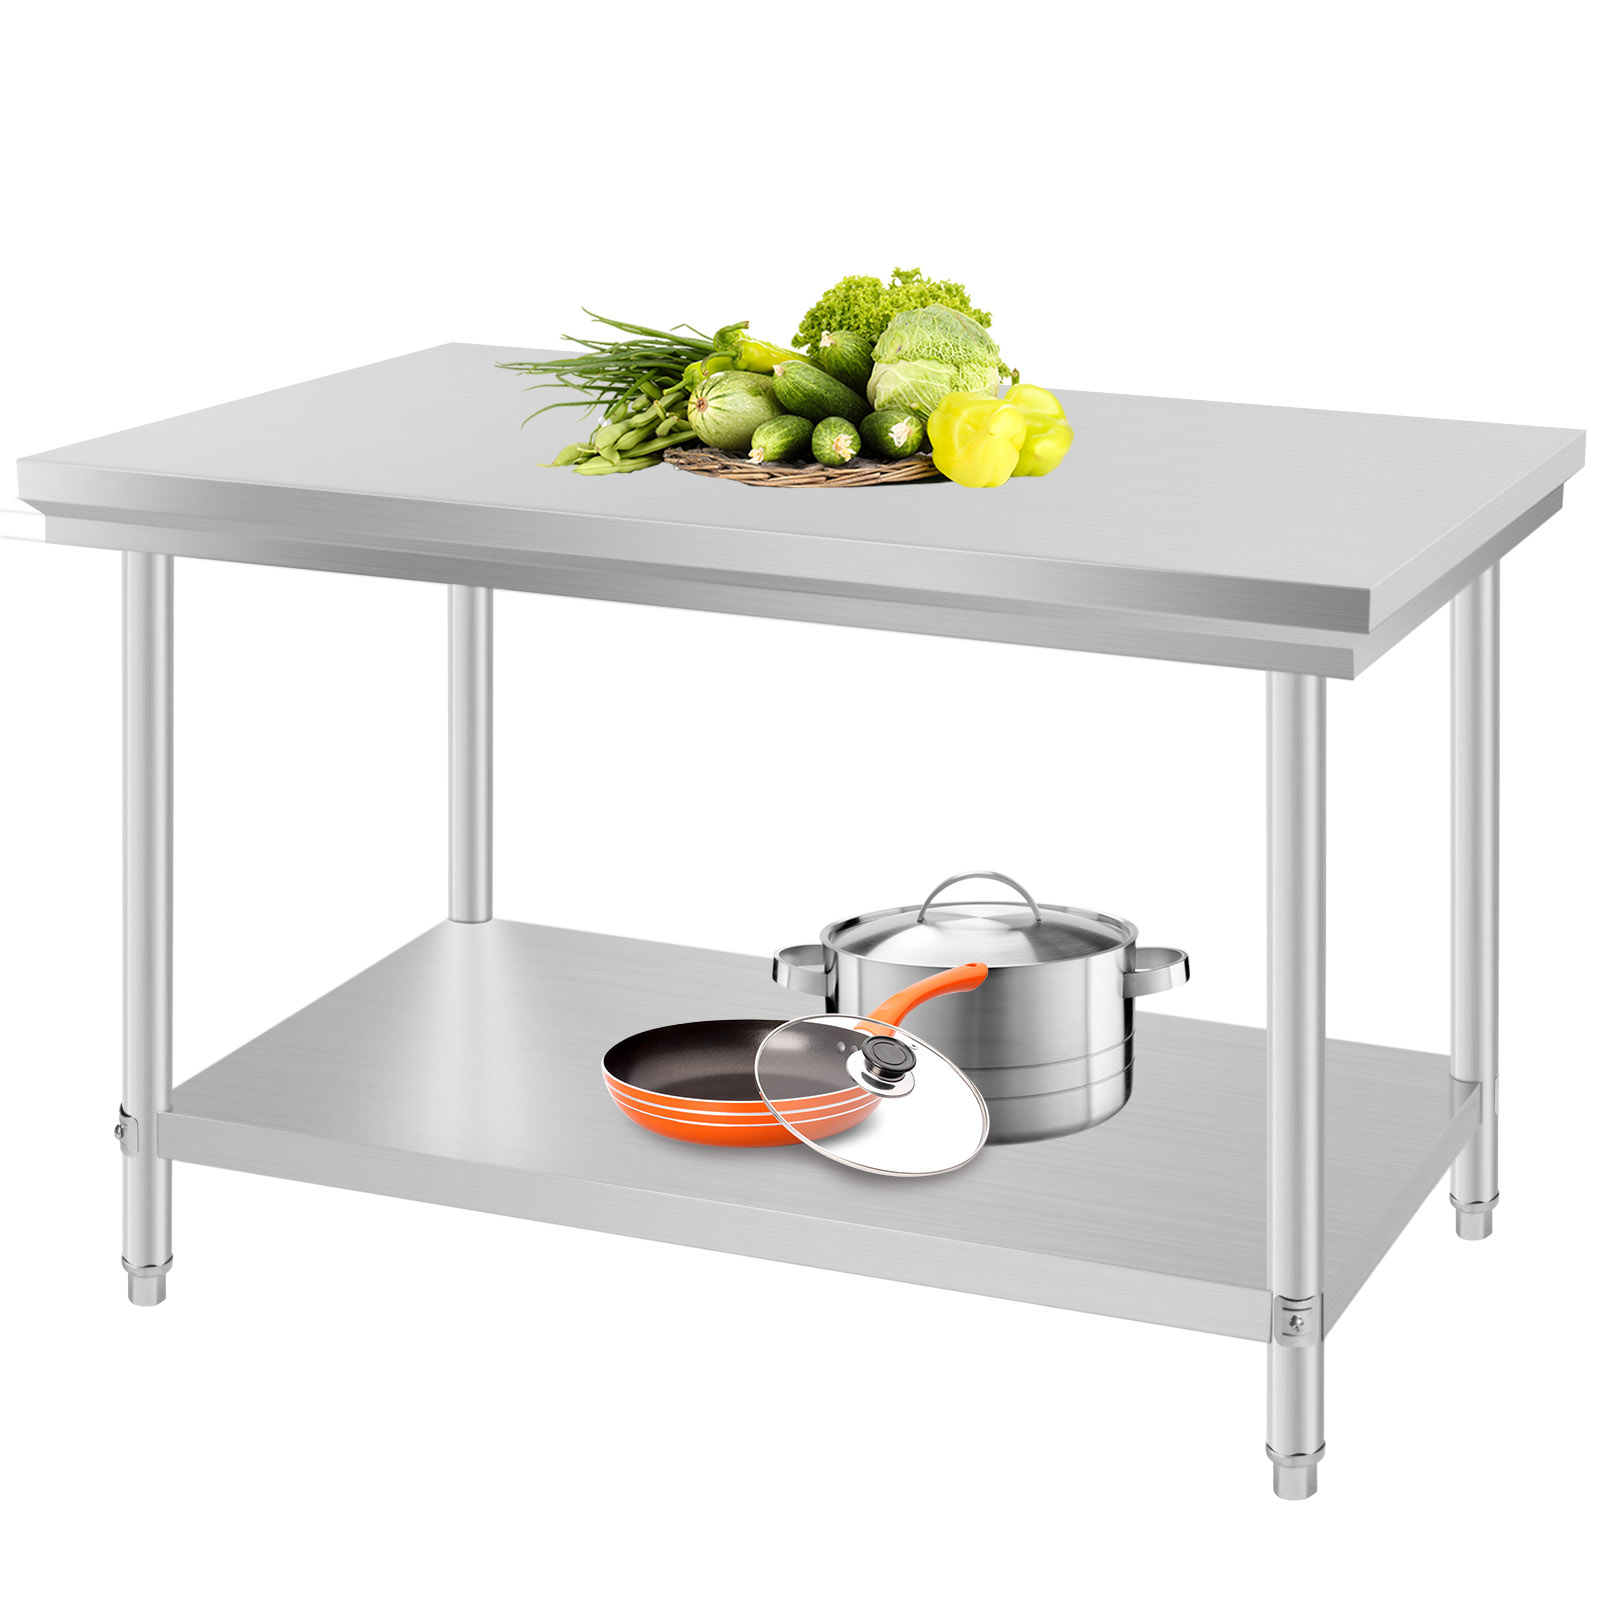 24quot X 48quot Stainless Steel Kitchen Work Prep Table Storage